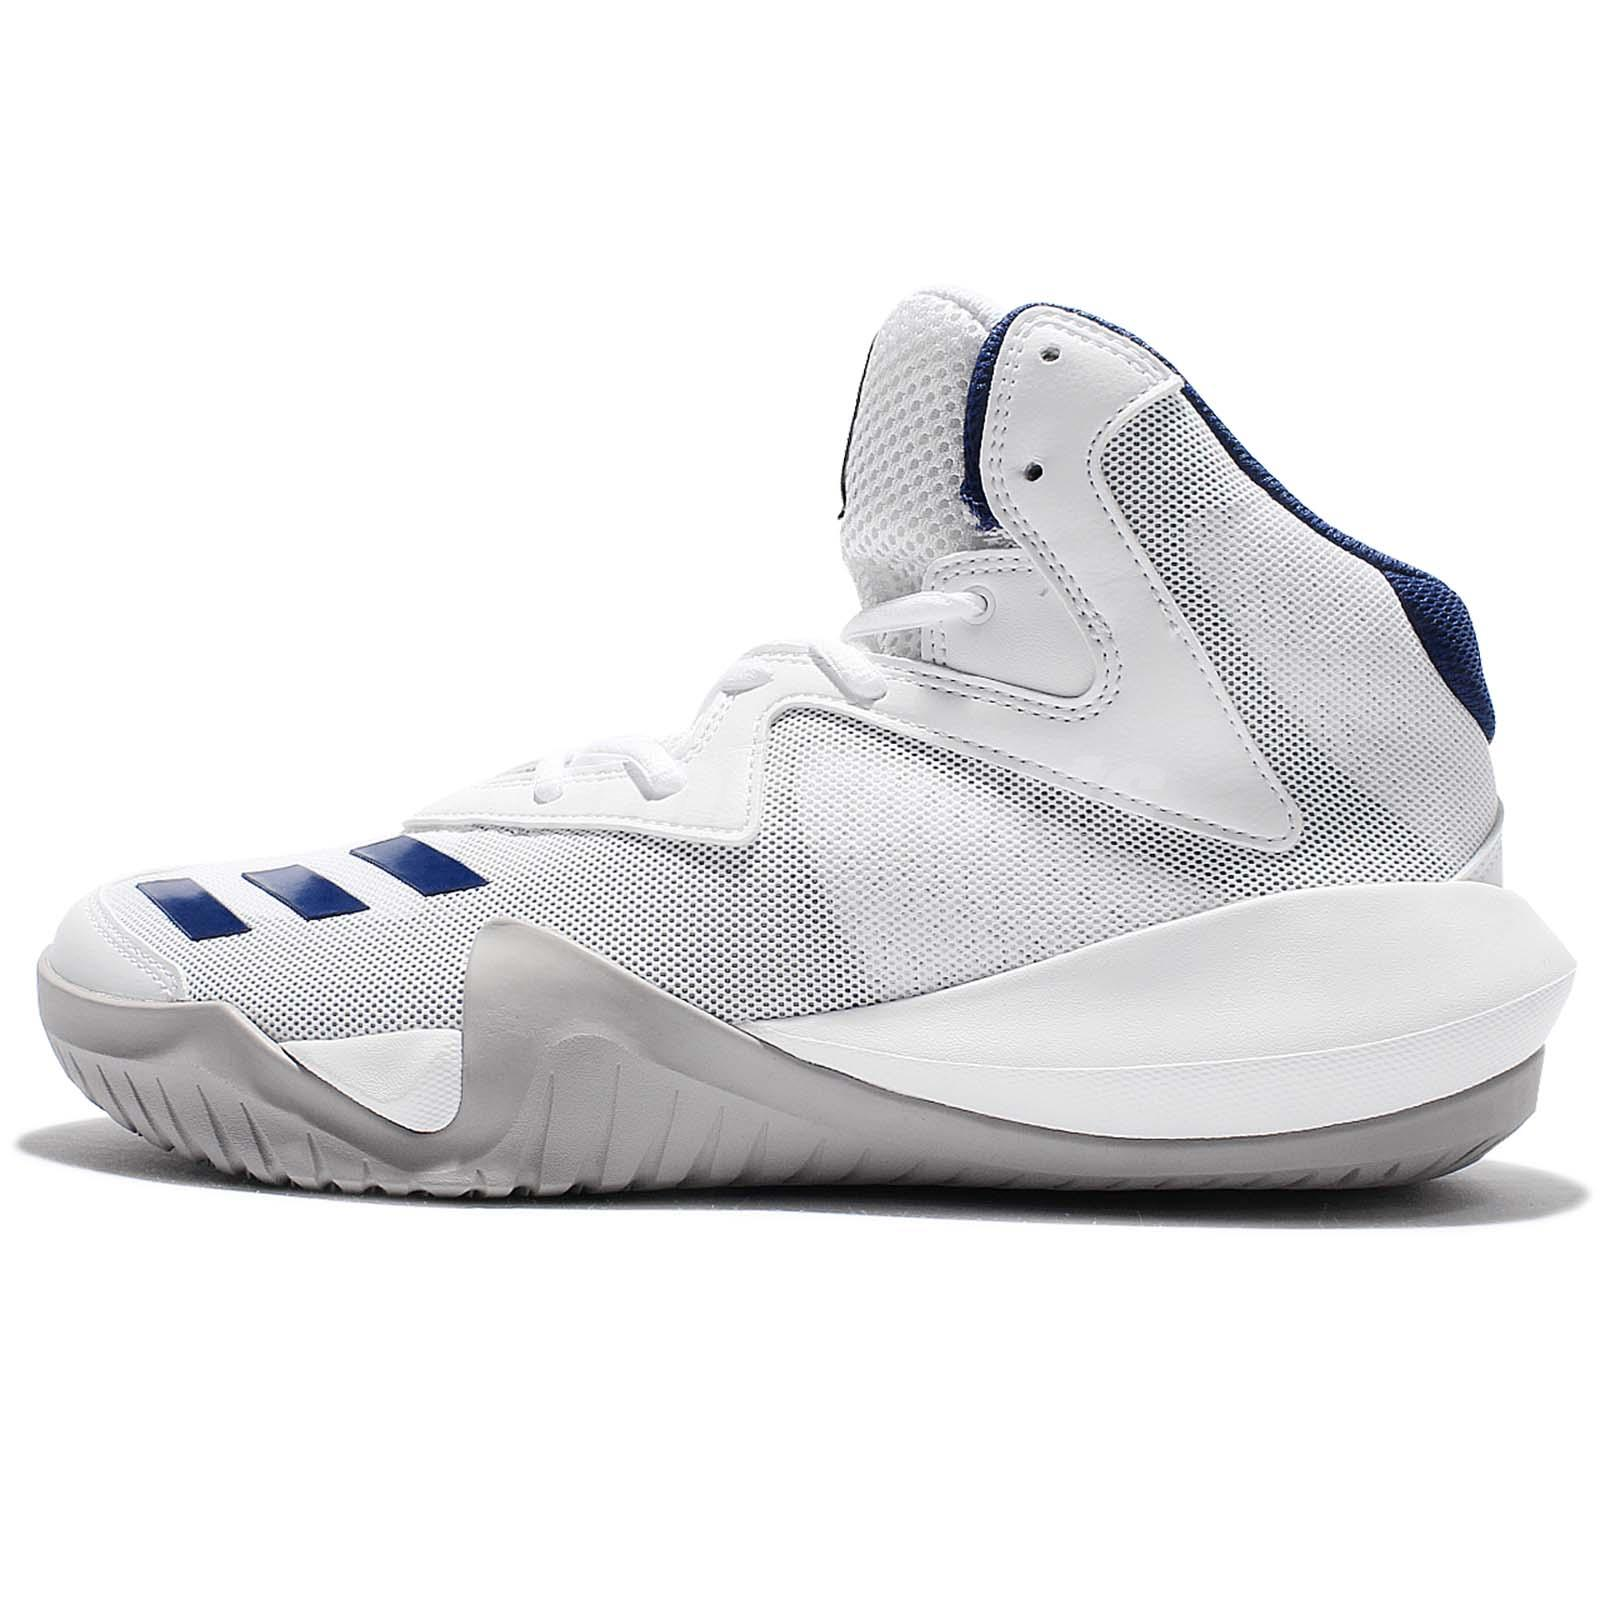 adidas Crazy Team 2017 White Grey Men Basketball Shoes Sneakers BB8256